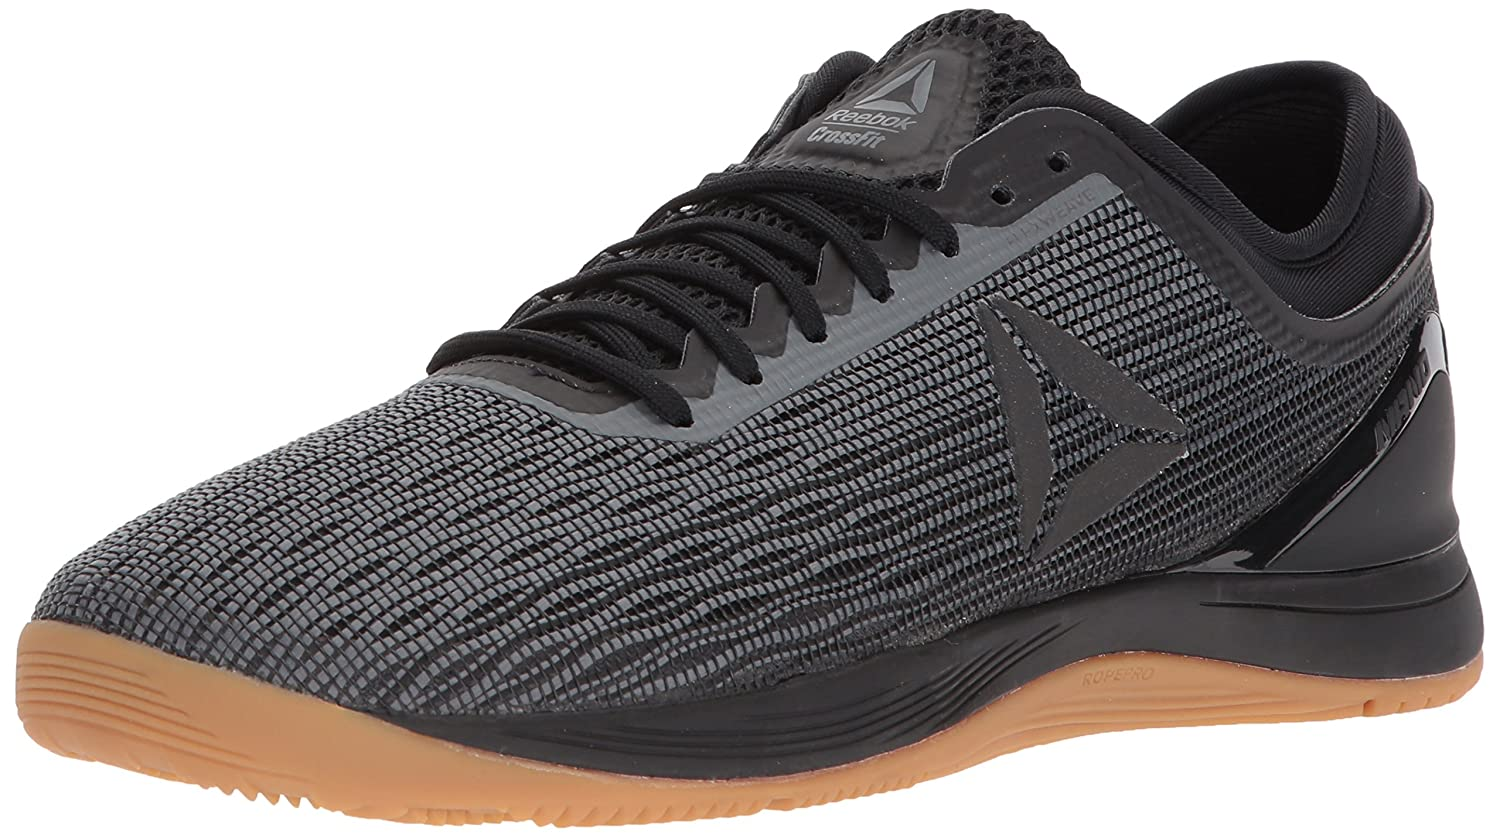 Reebok Crossfit Sko Menns Amazon sg0JB